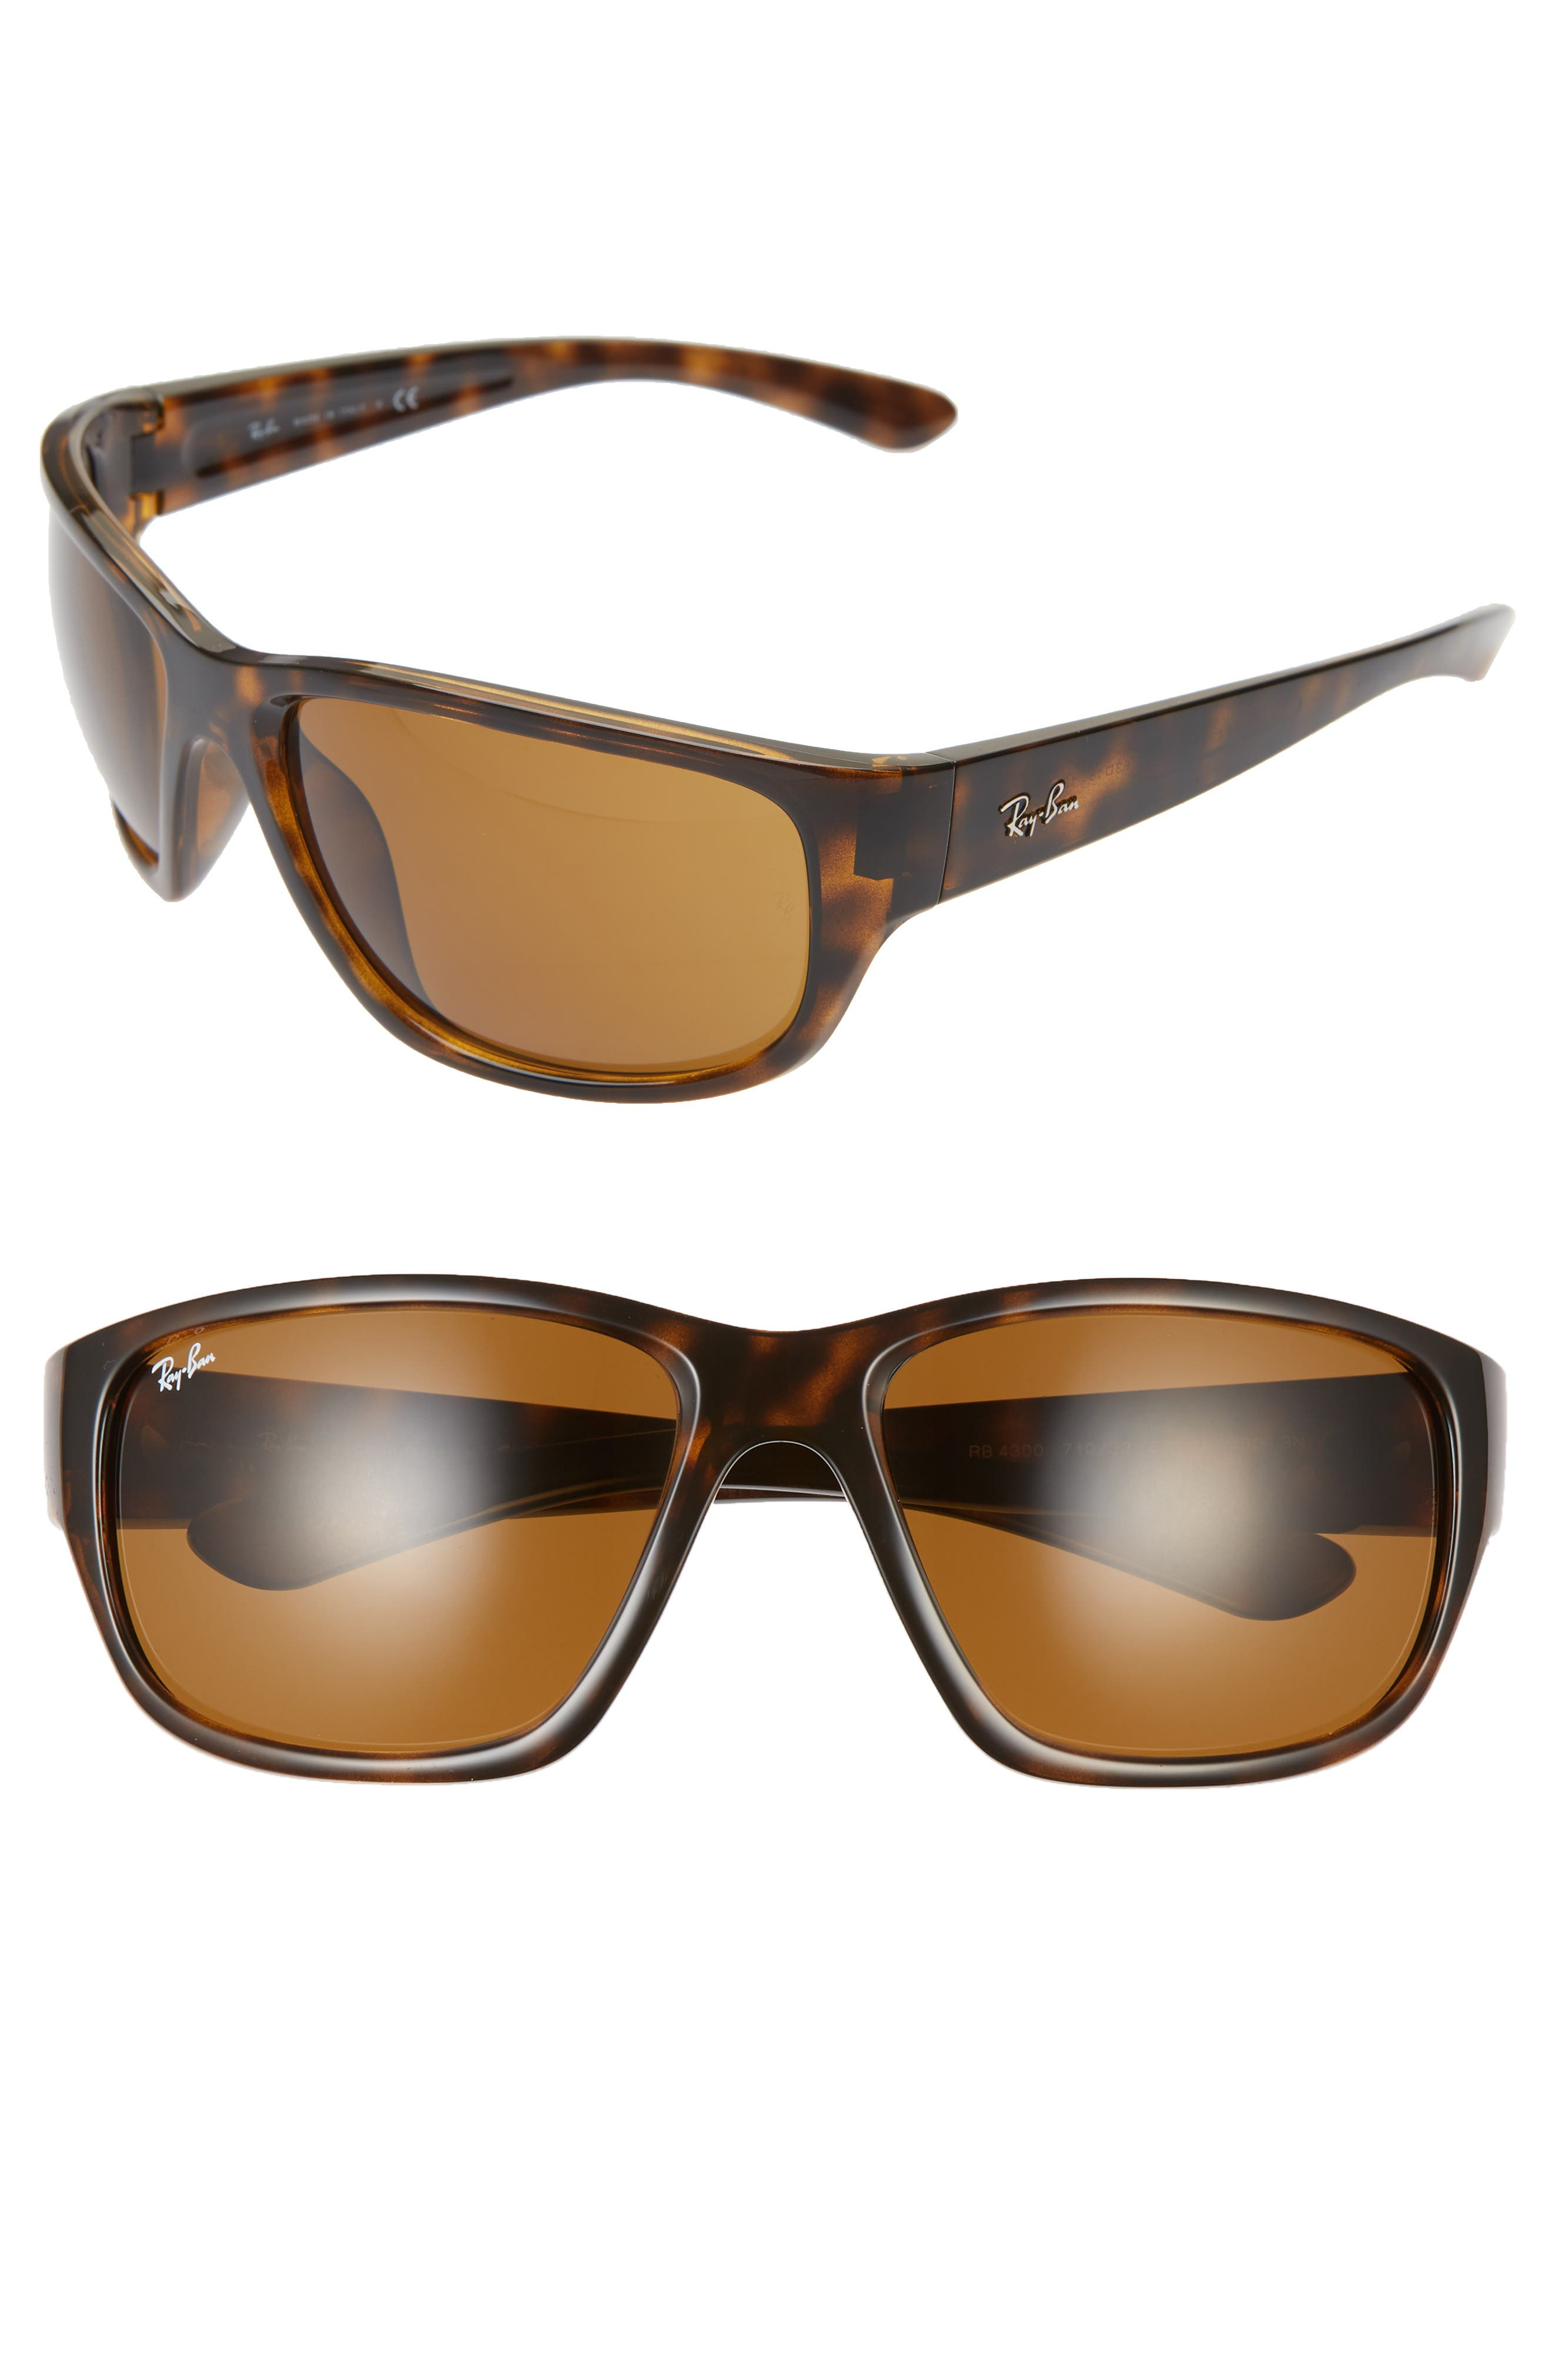 Ray-Ban 6m Oversize Square Sunglasses - Havana/ Brown Solid